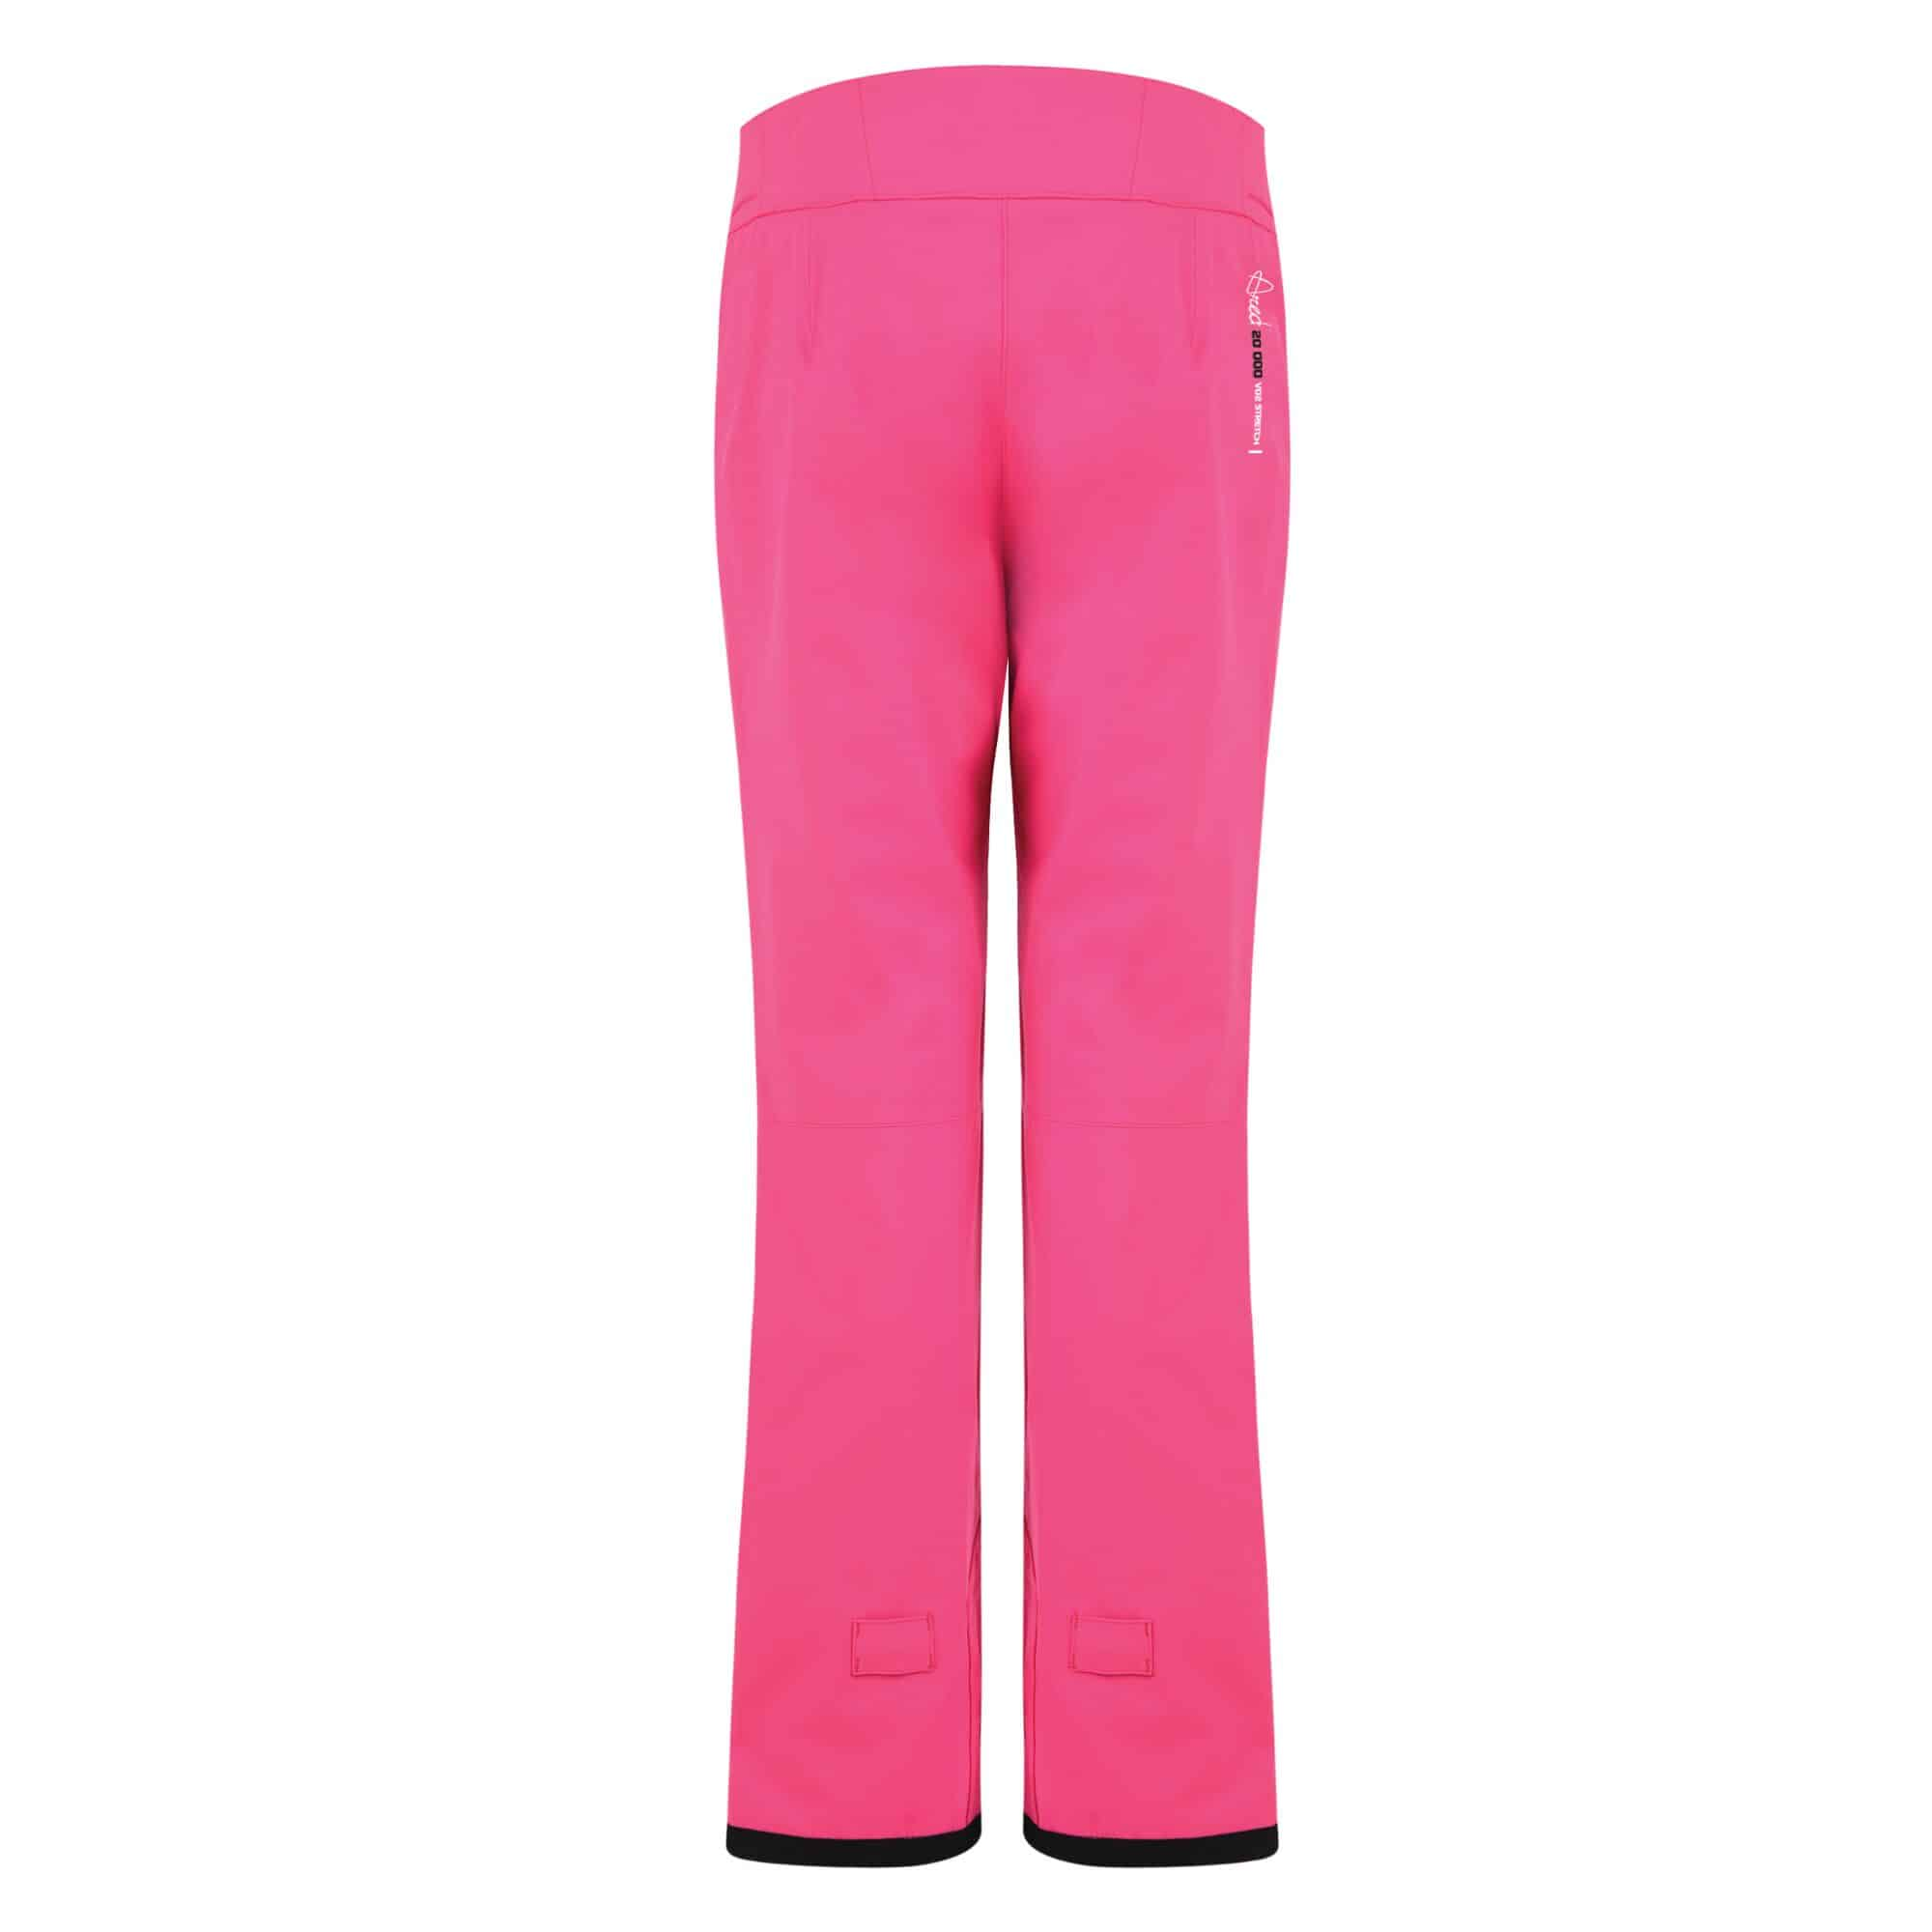 stand for cyber pink rear